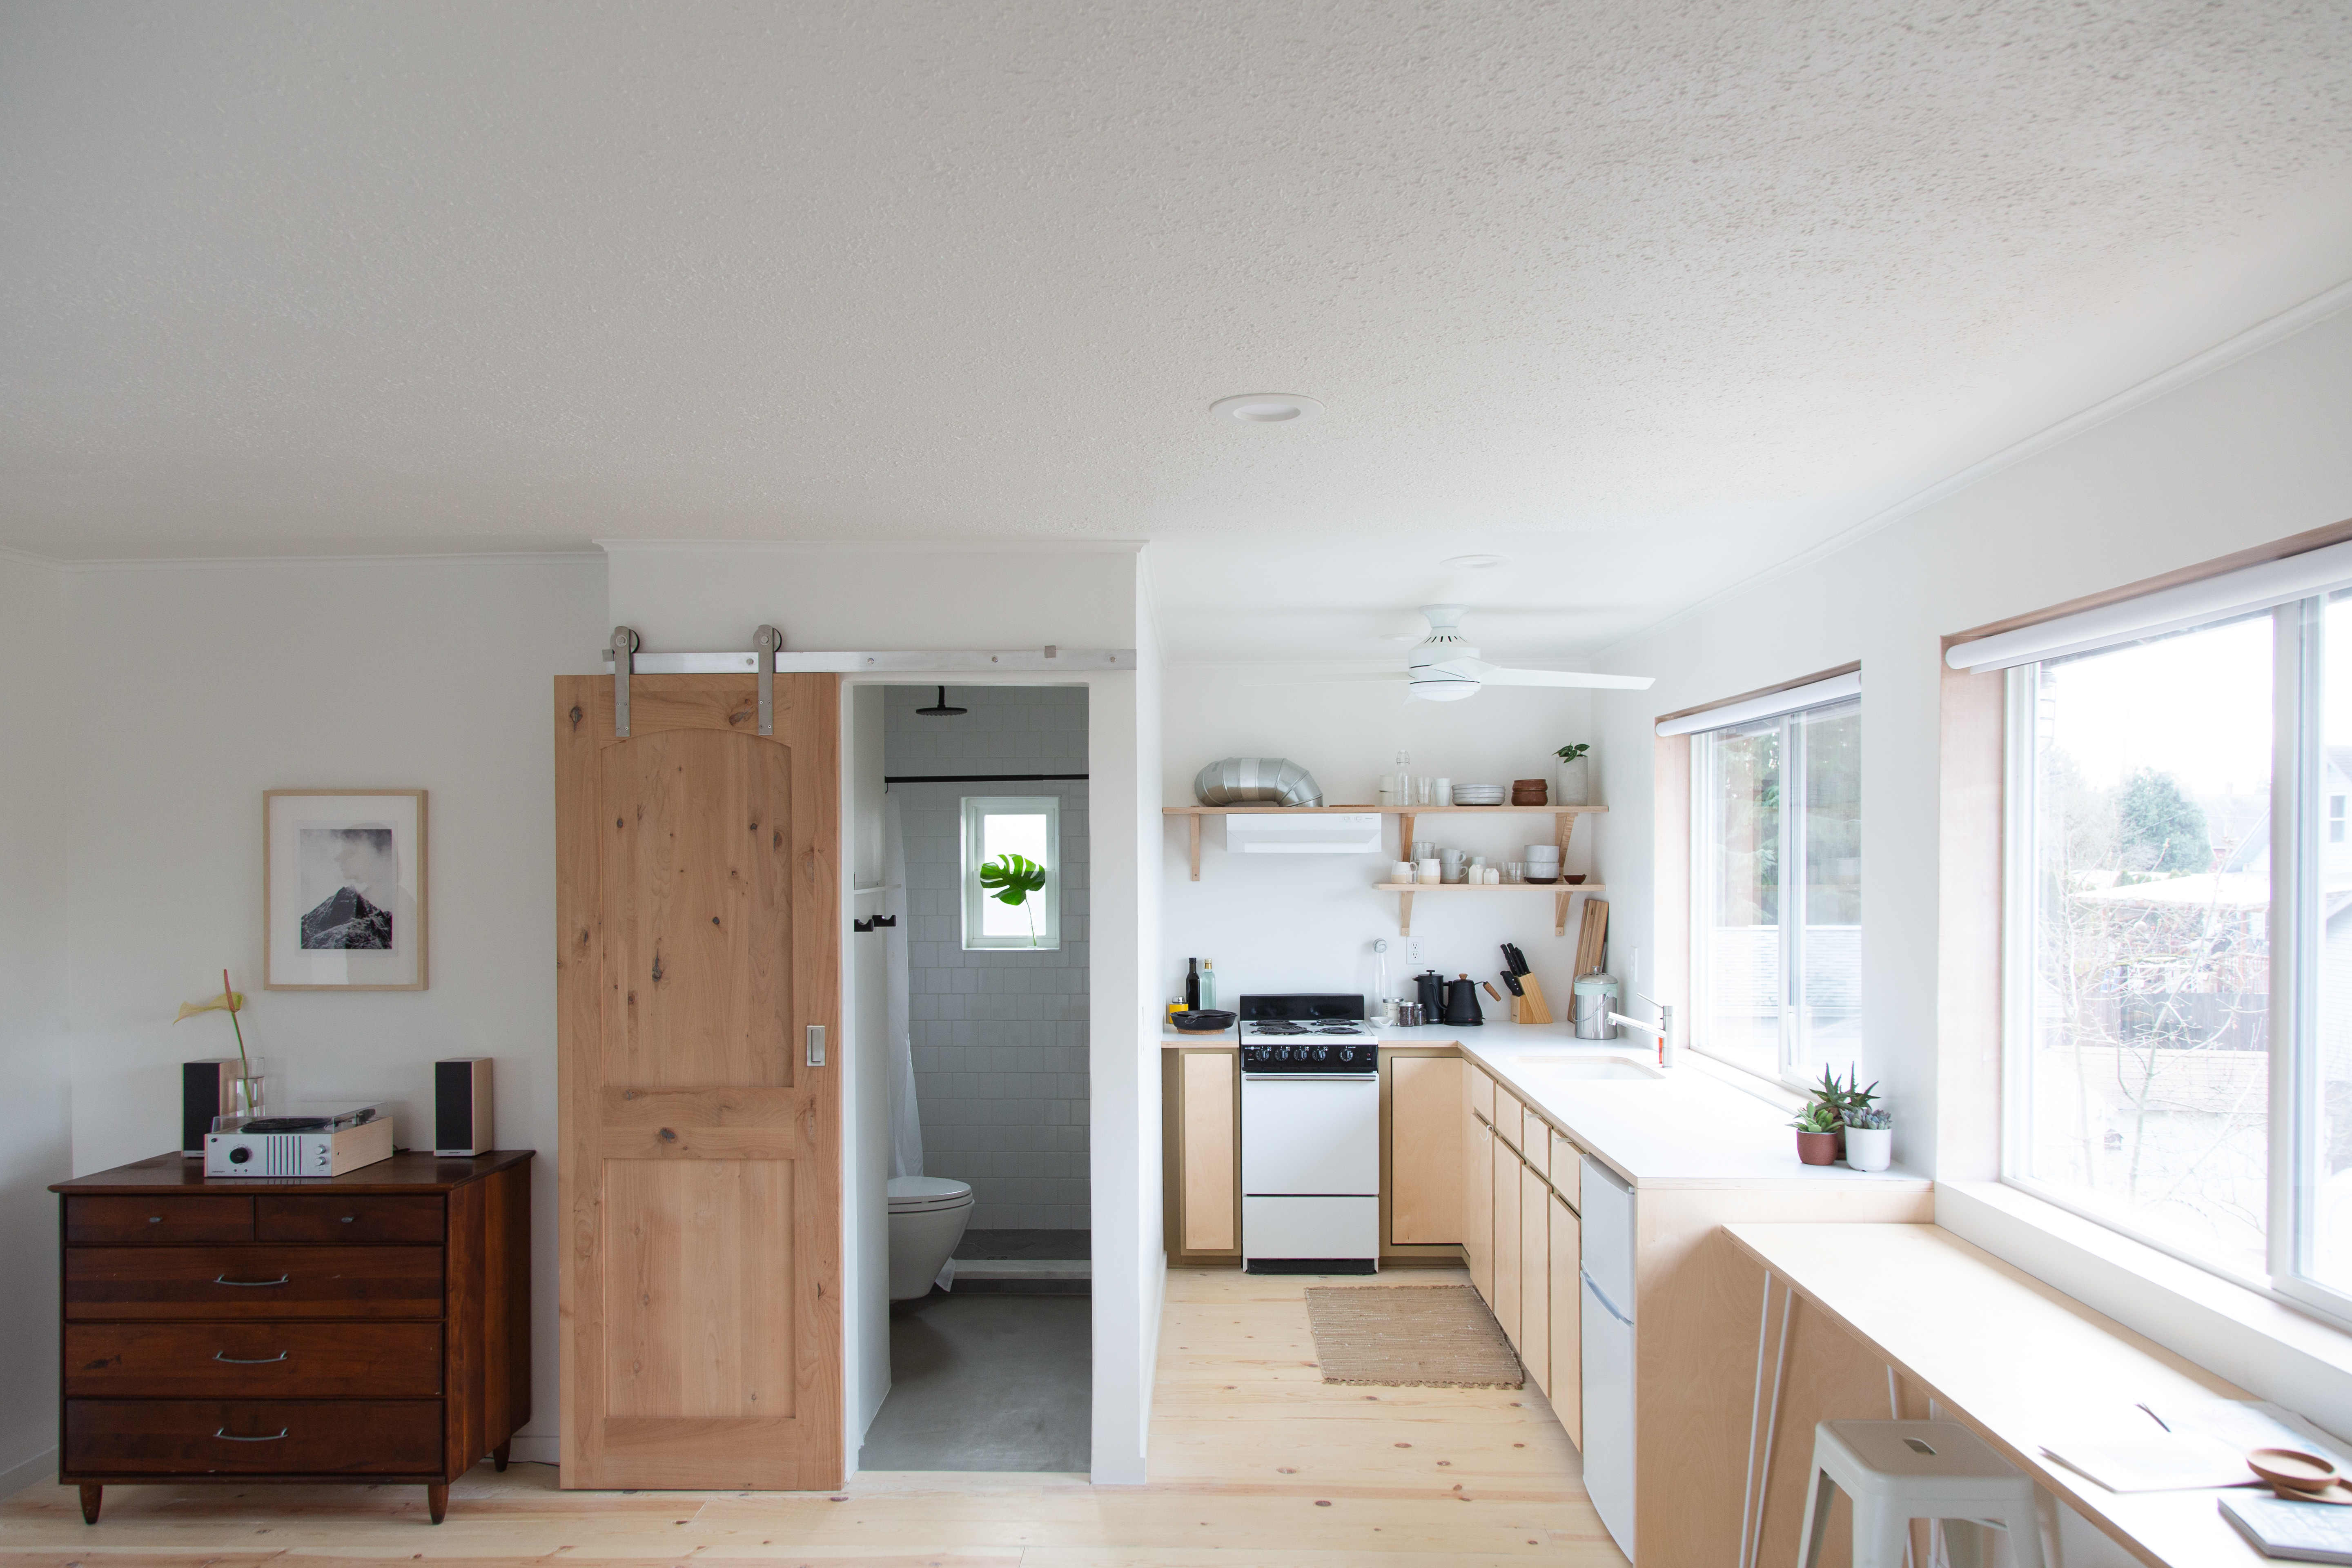 From Dark In-Law Studio to Bright and Airy Guest Unit